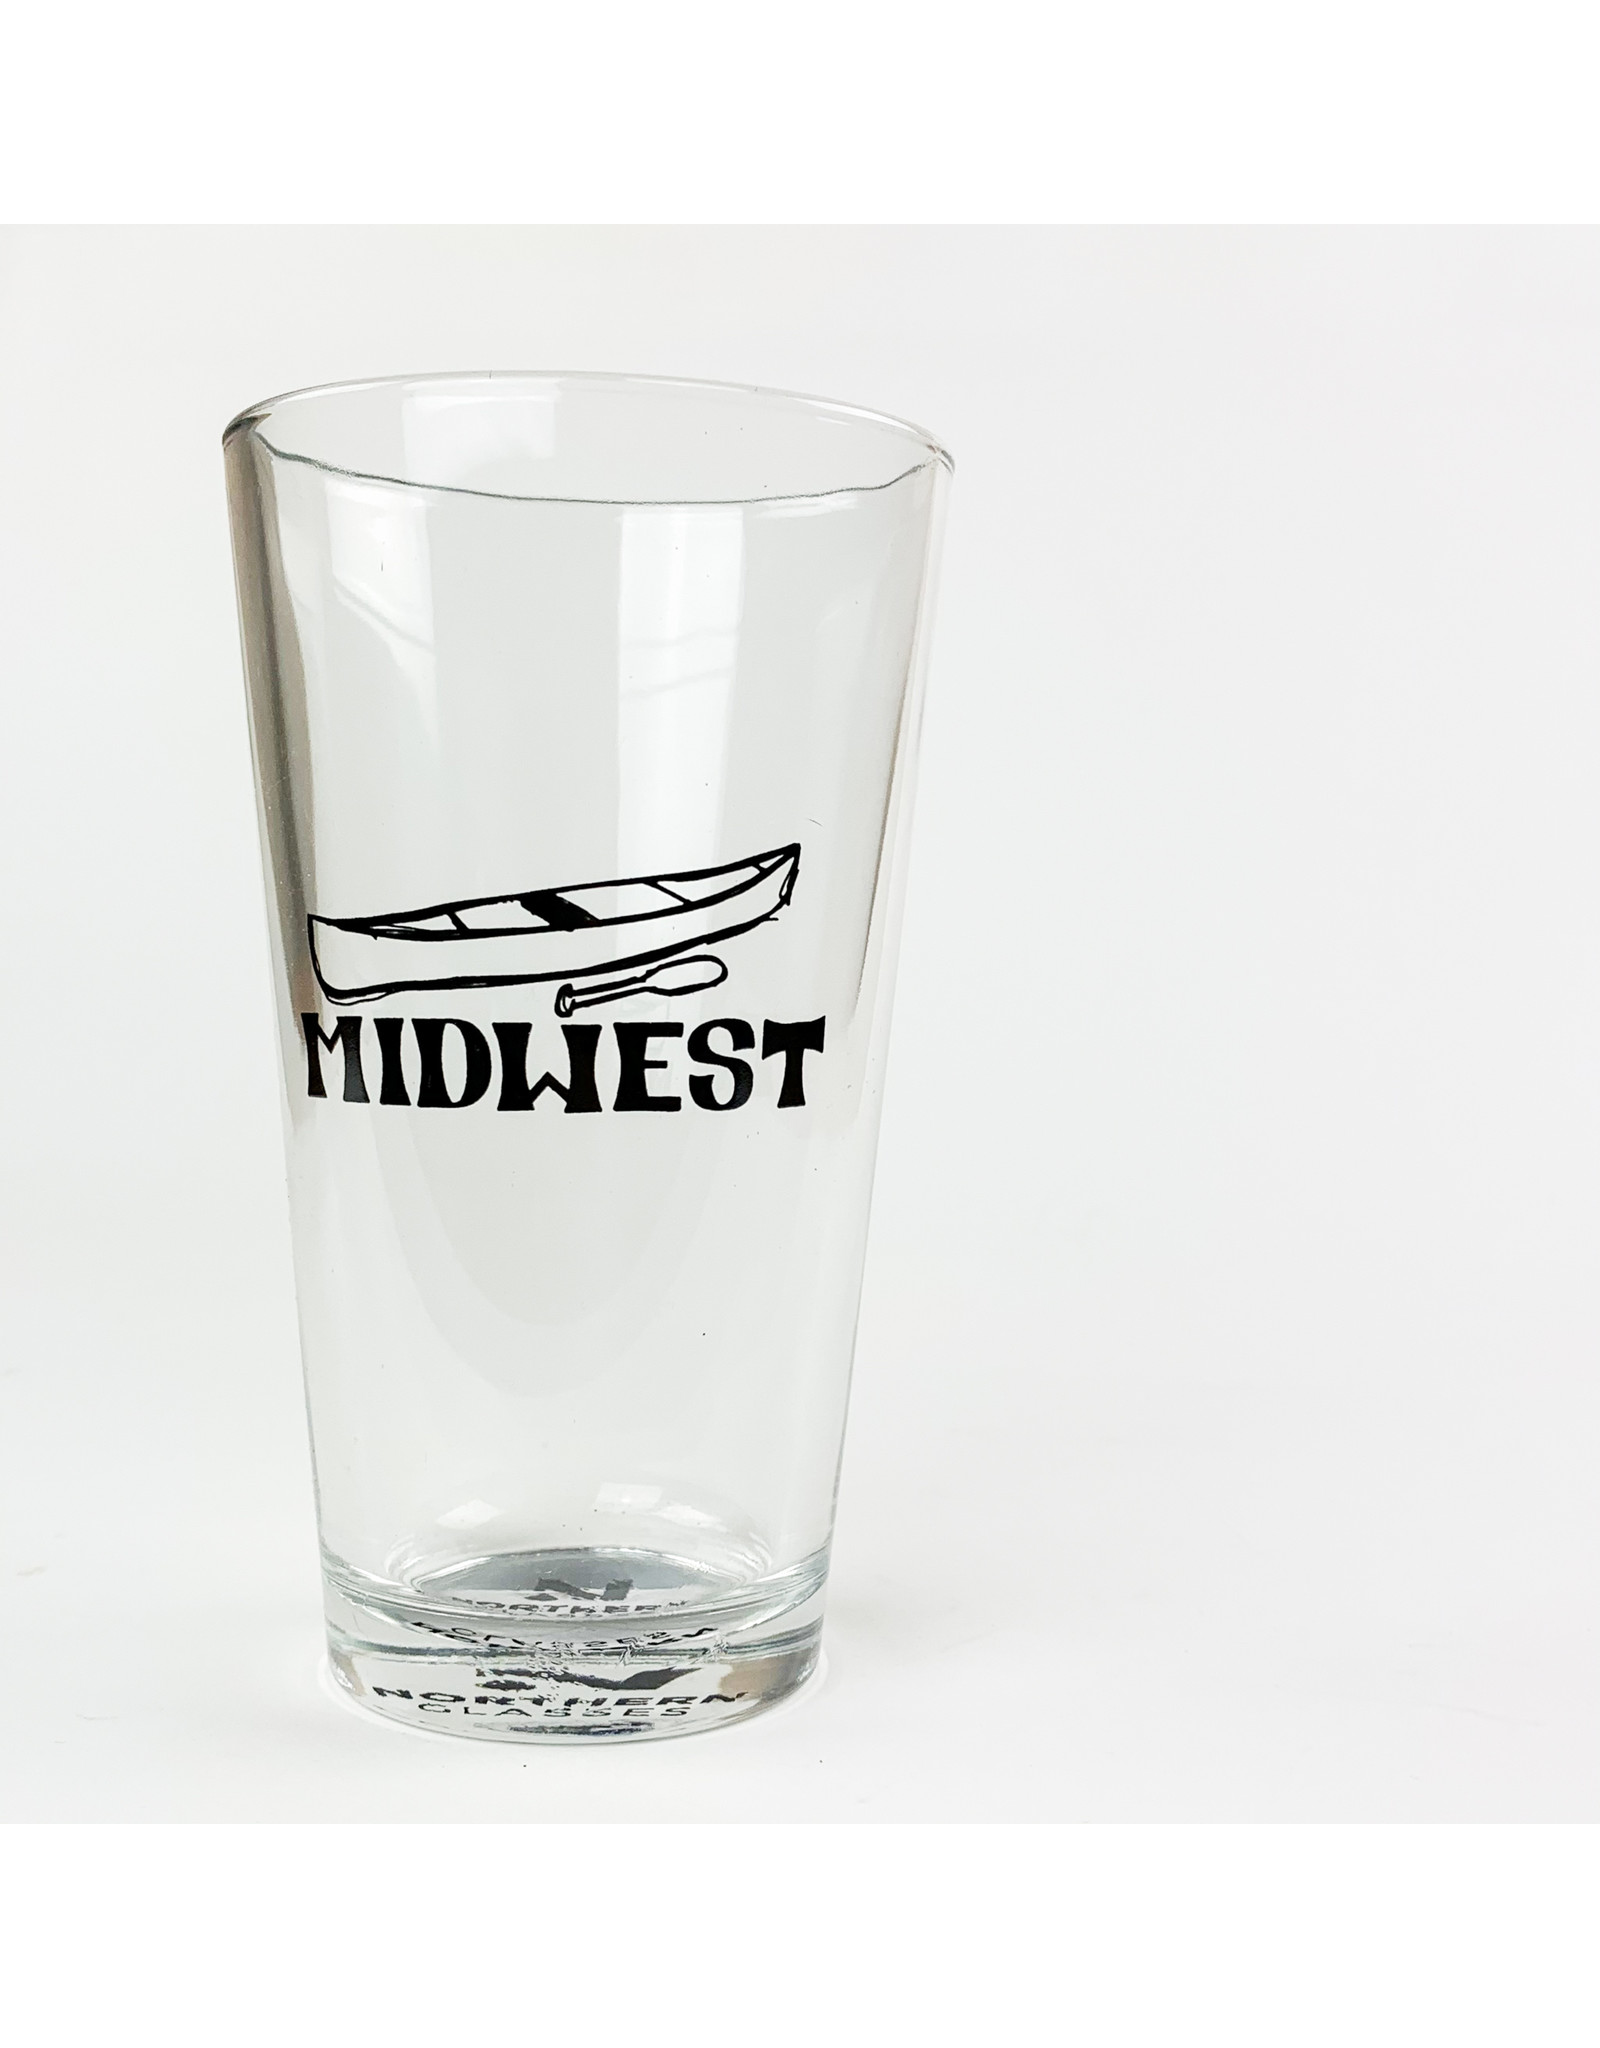 Northern Glasses Northern Pint Midwest